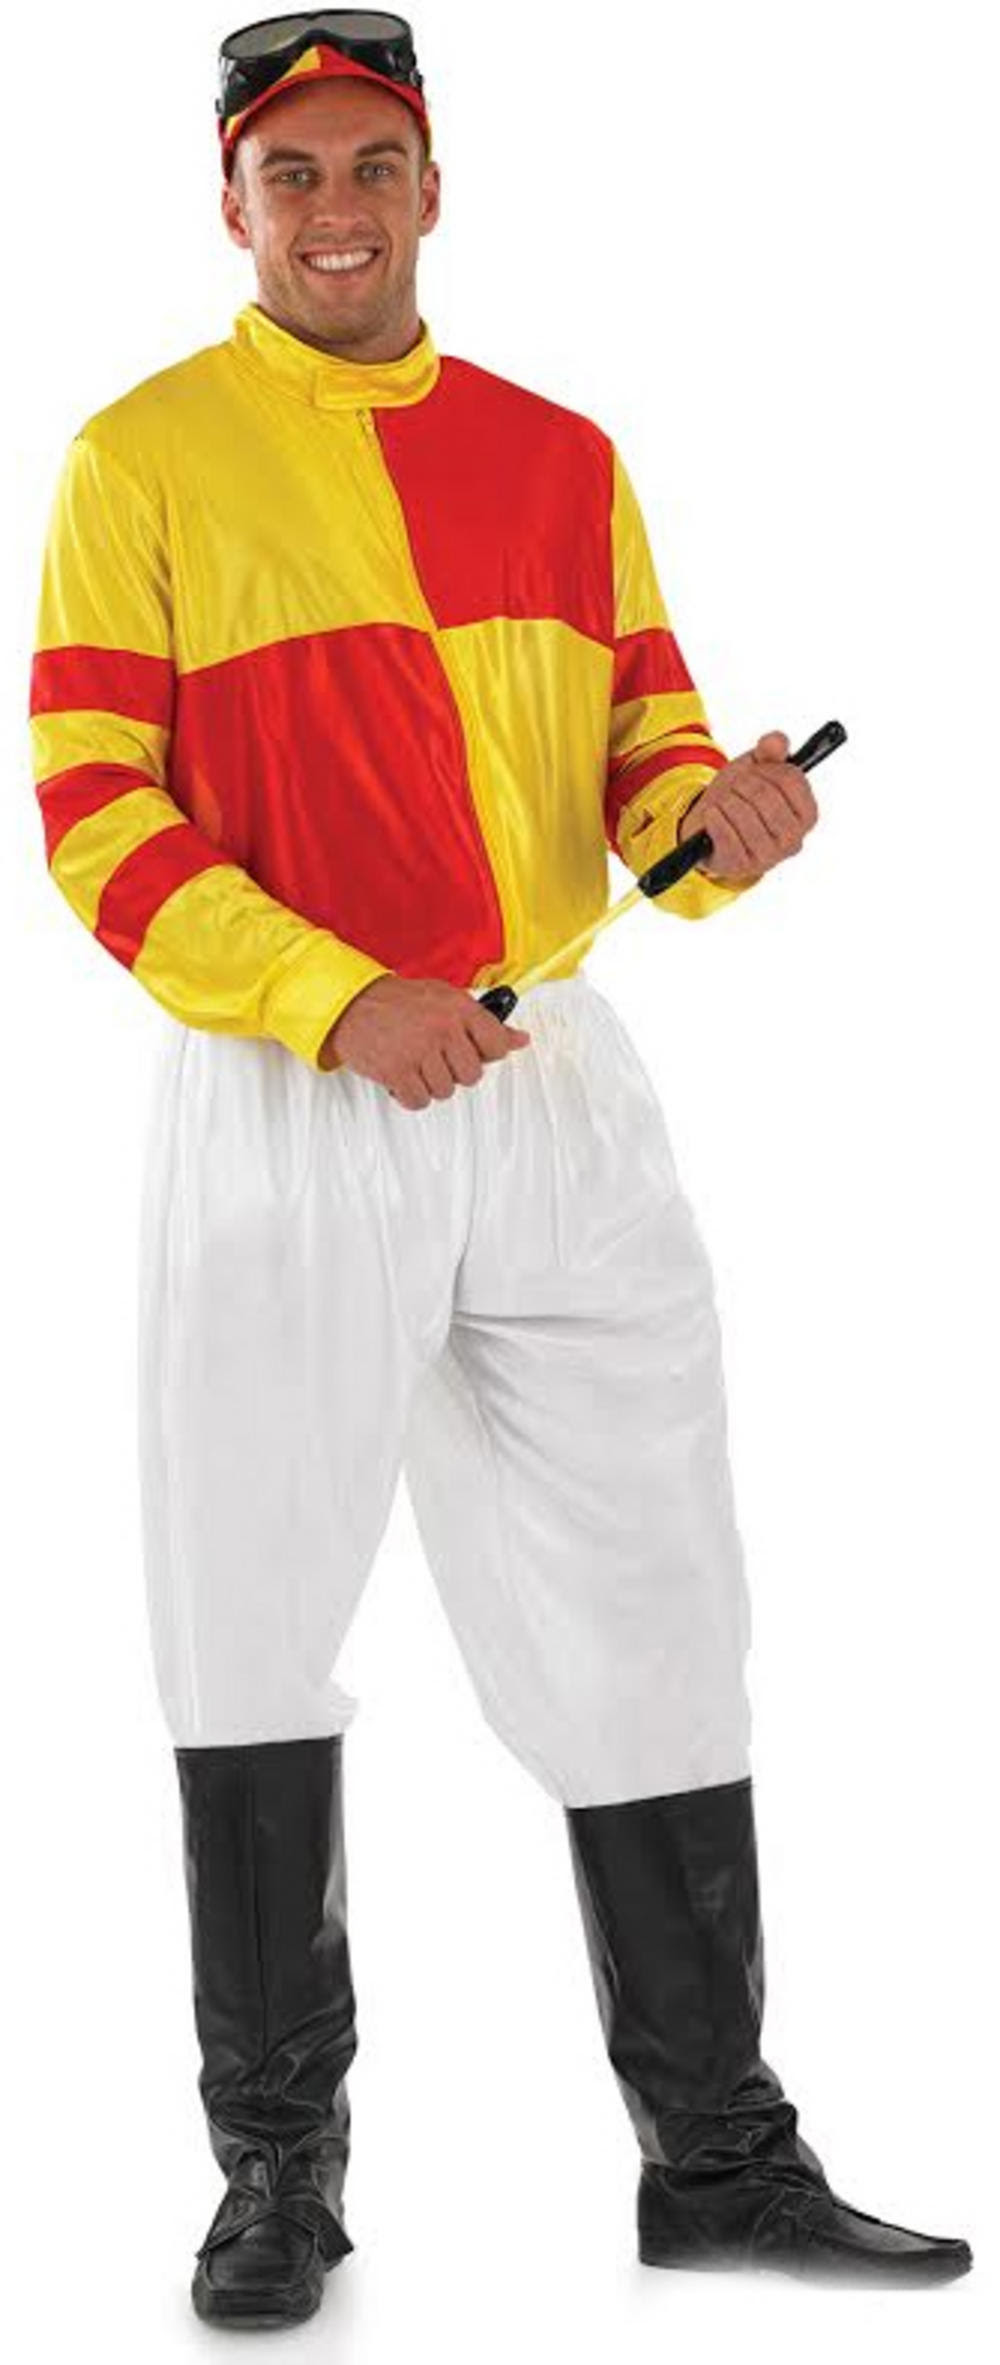 Red and Yellow Jockey Costume  Letter quot;Jquot; Costumes  Mega Fancy Dress